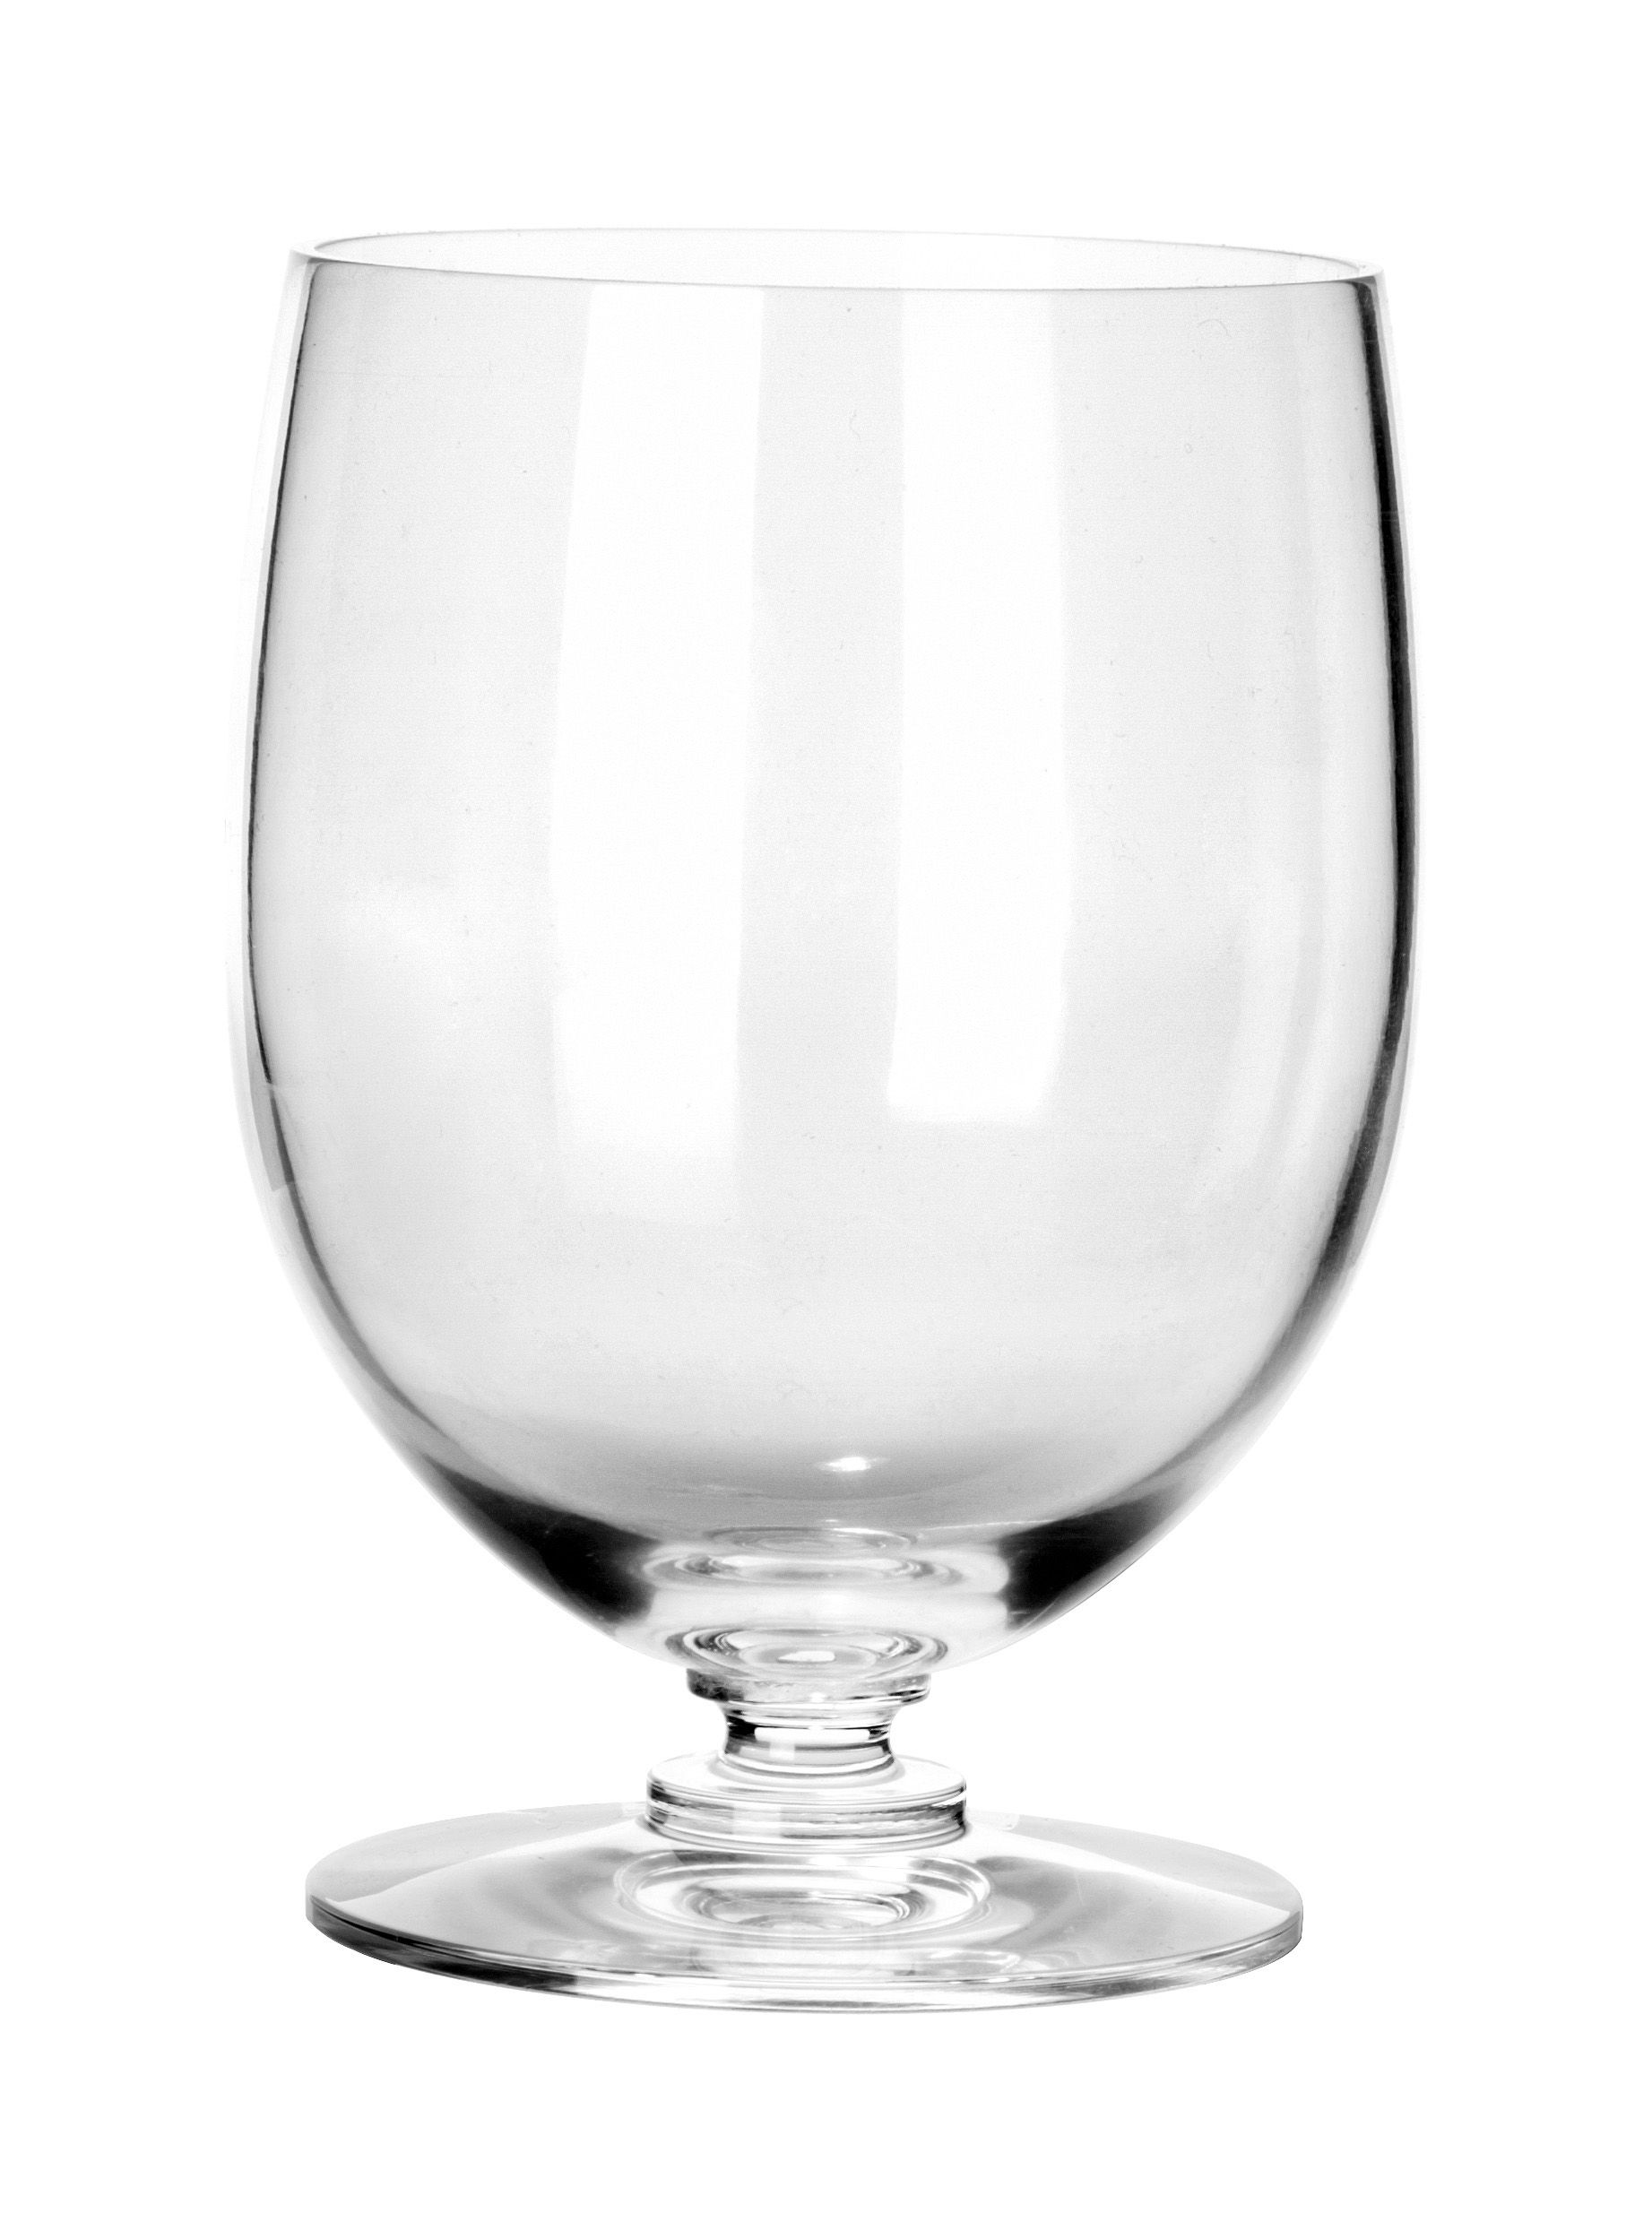 Tableware - Wine Glasses & Glassware - Dressed Water glass - Water tumbler by Alessi - Transparent crystal - Cristal